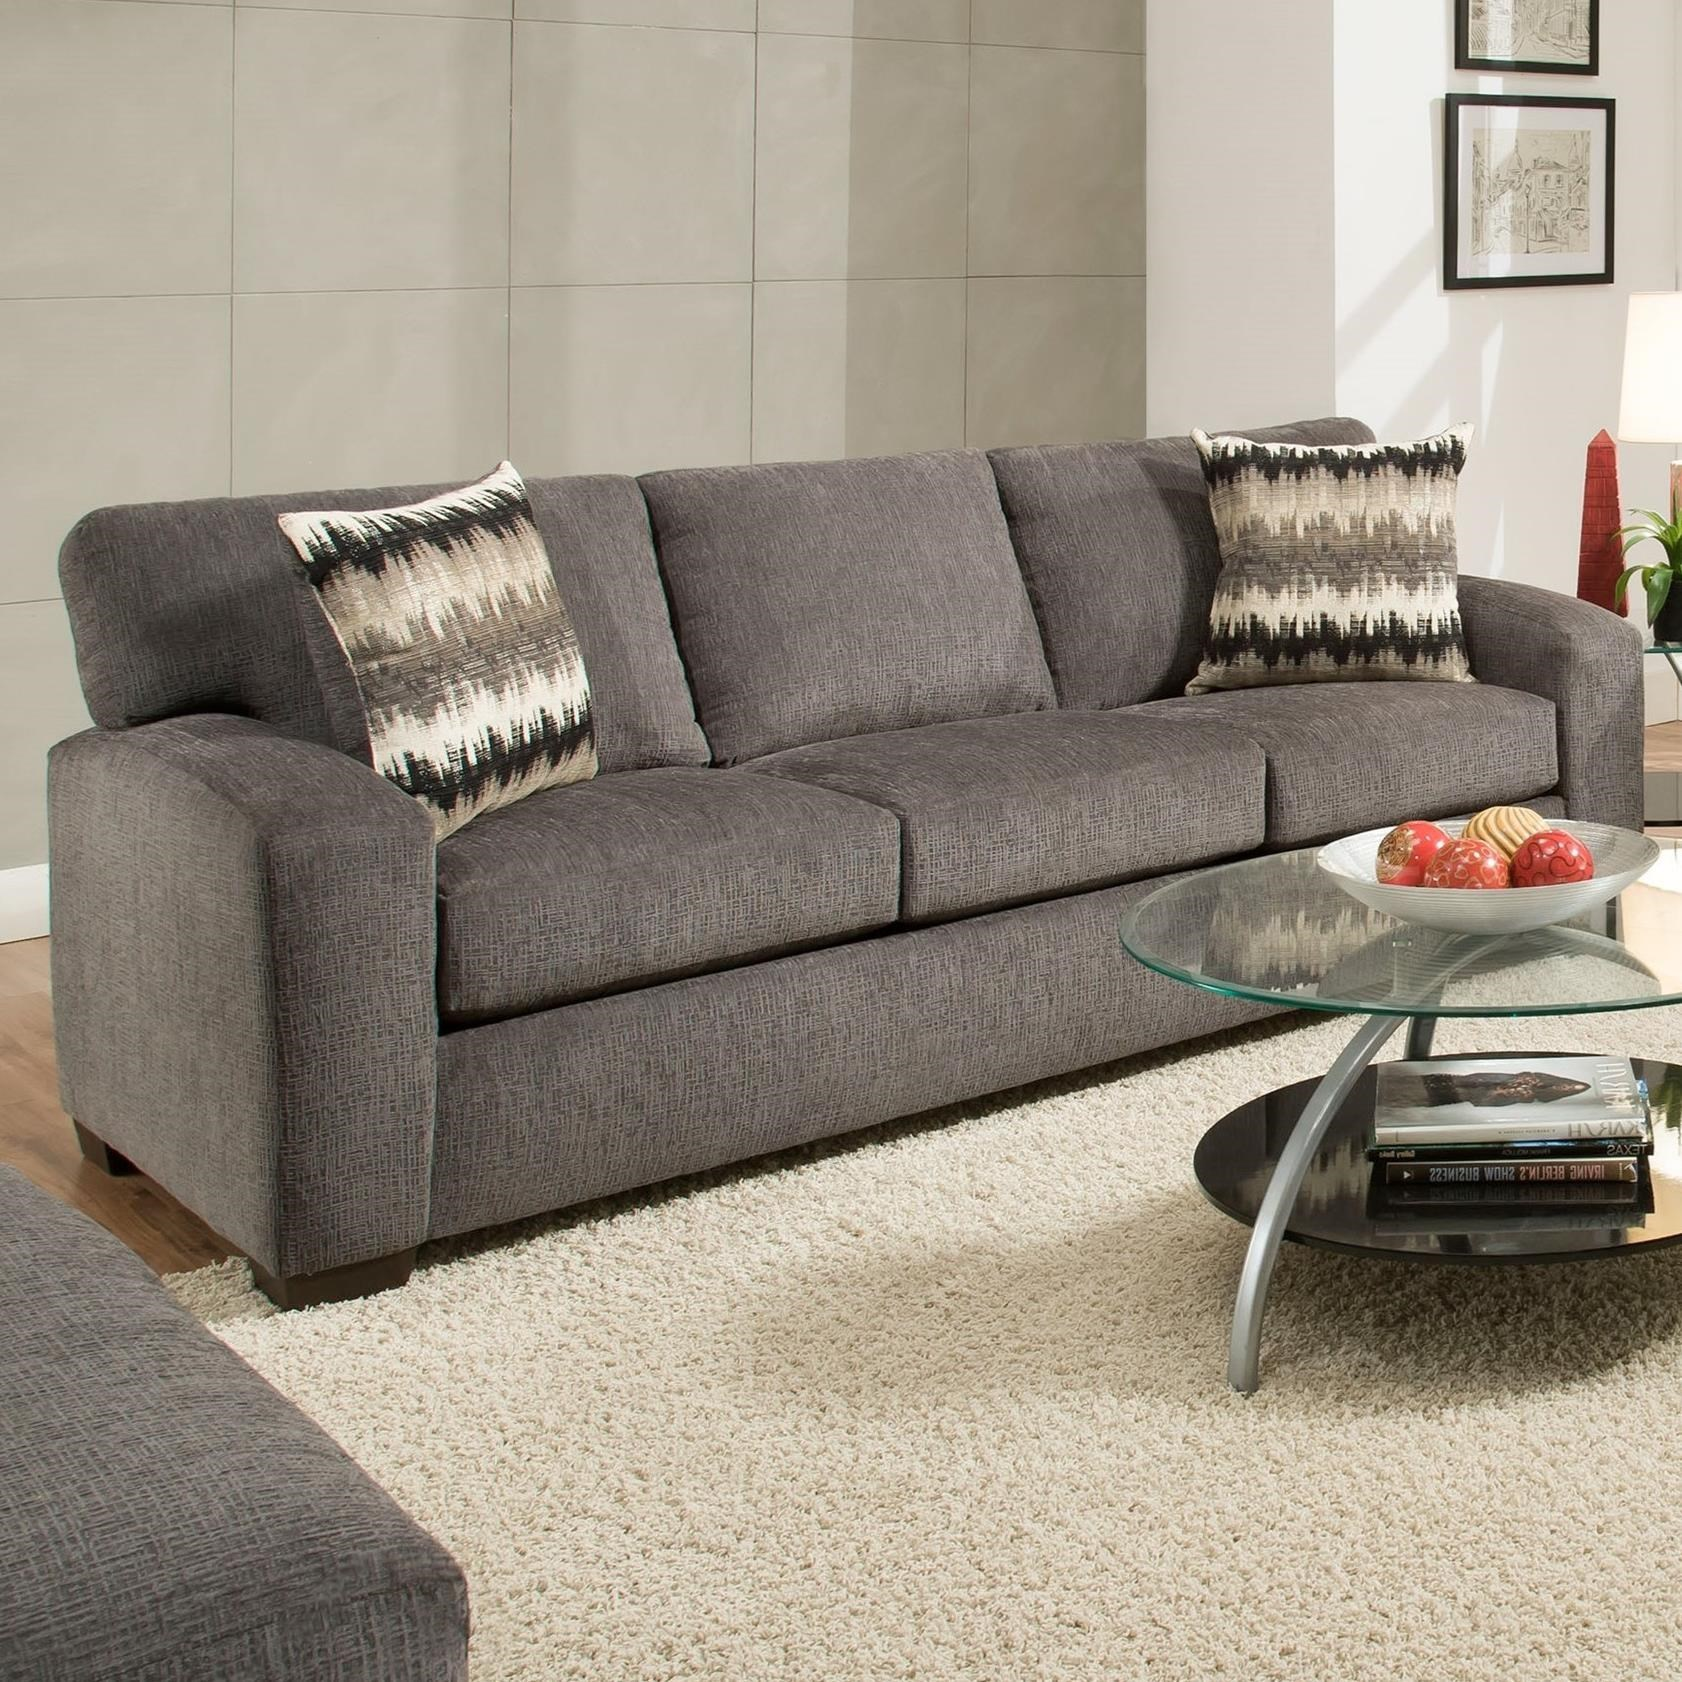 Ordinaire American Furniture 5250 Sleeper Sofa